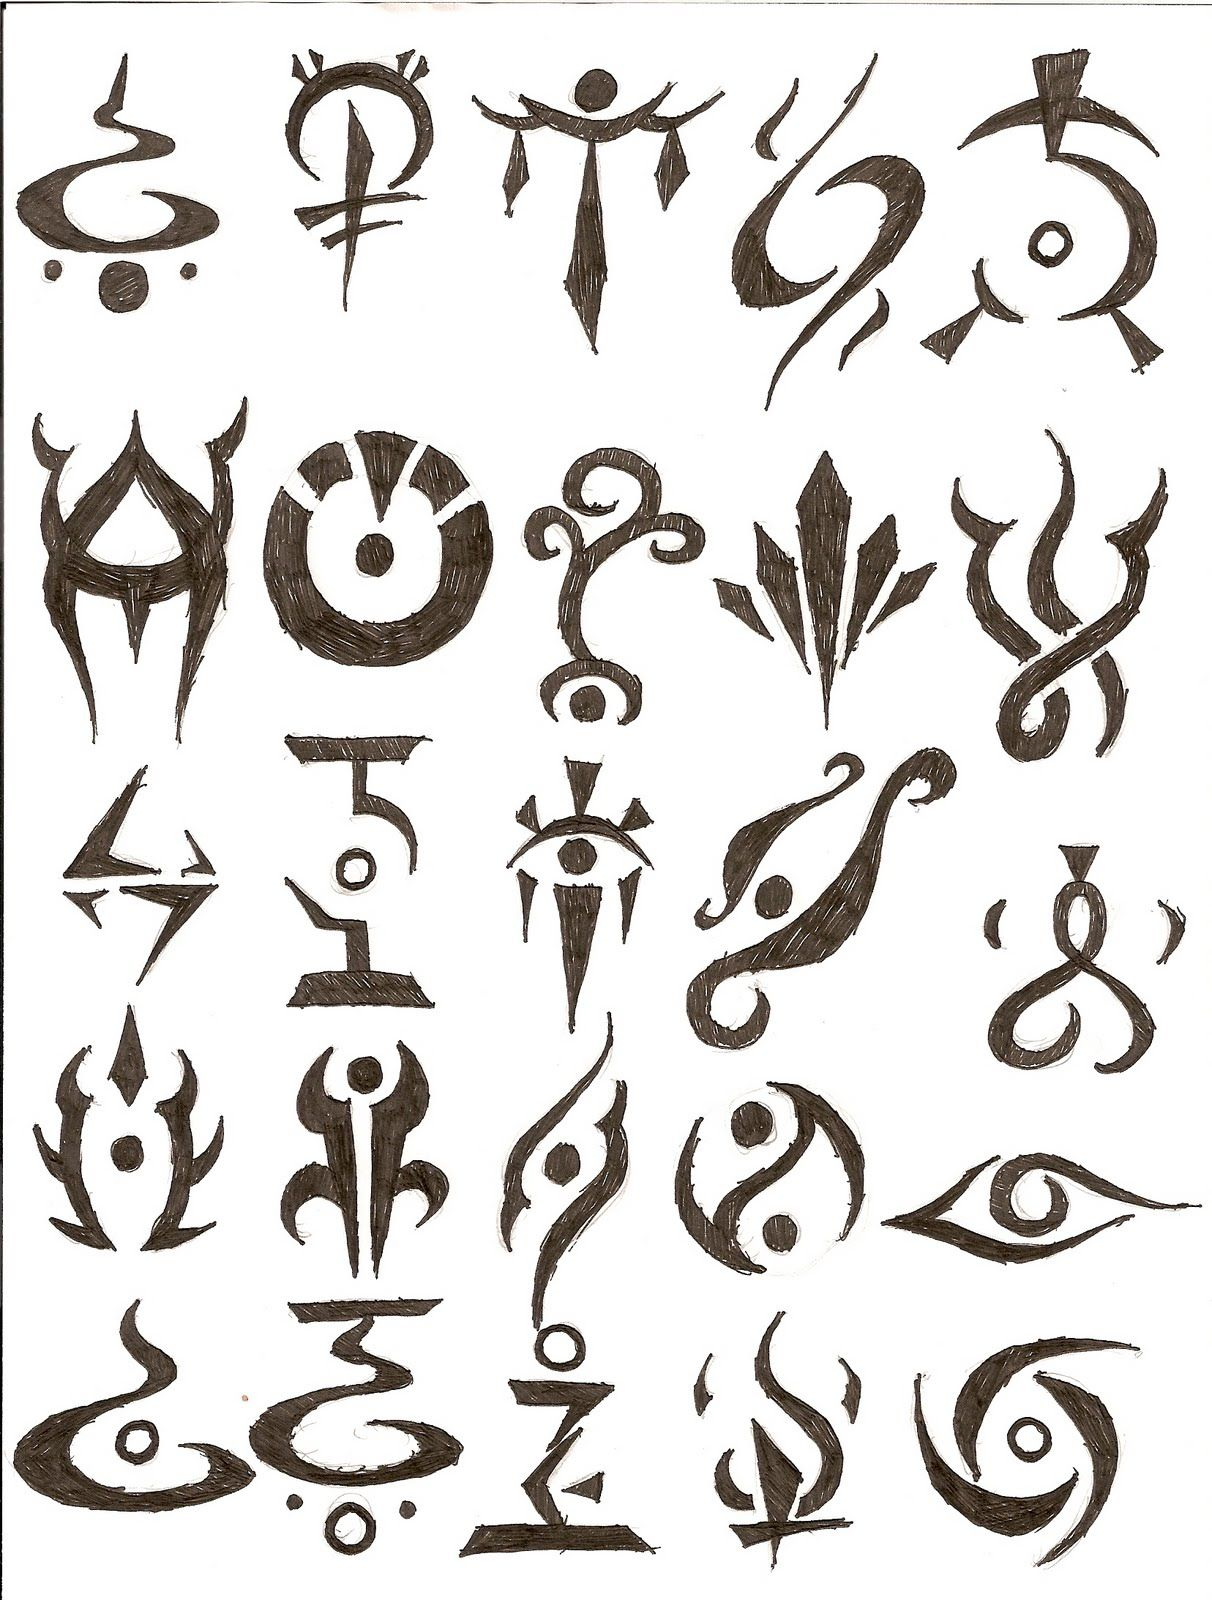 Greek god symbol tattoos google search sigil and body art greek god symbol tattoos google search biocorpaavc Images